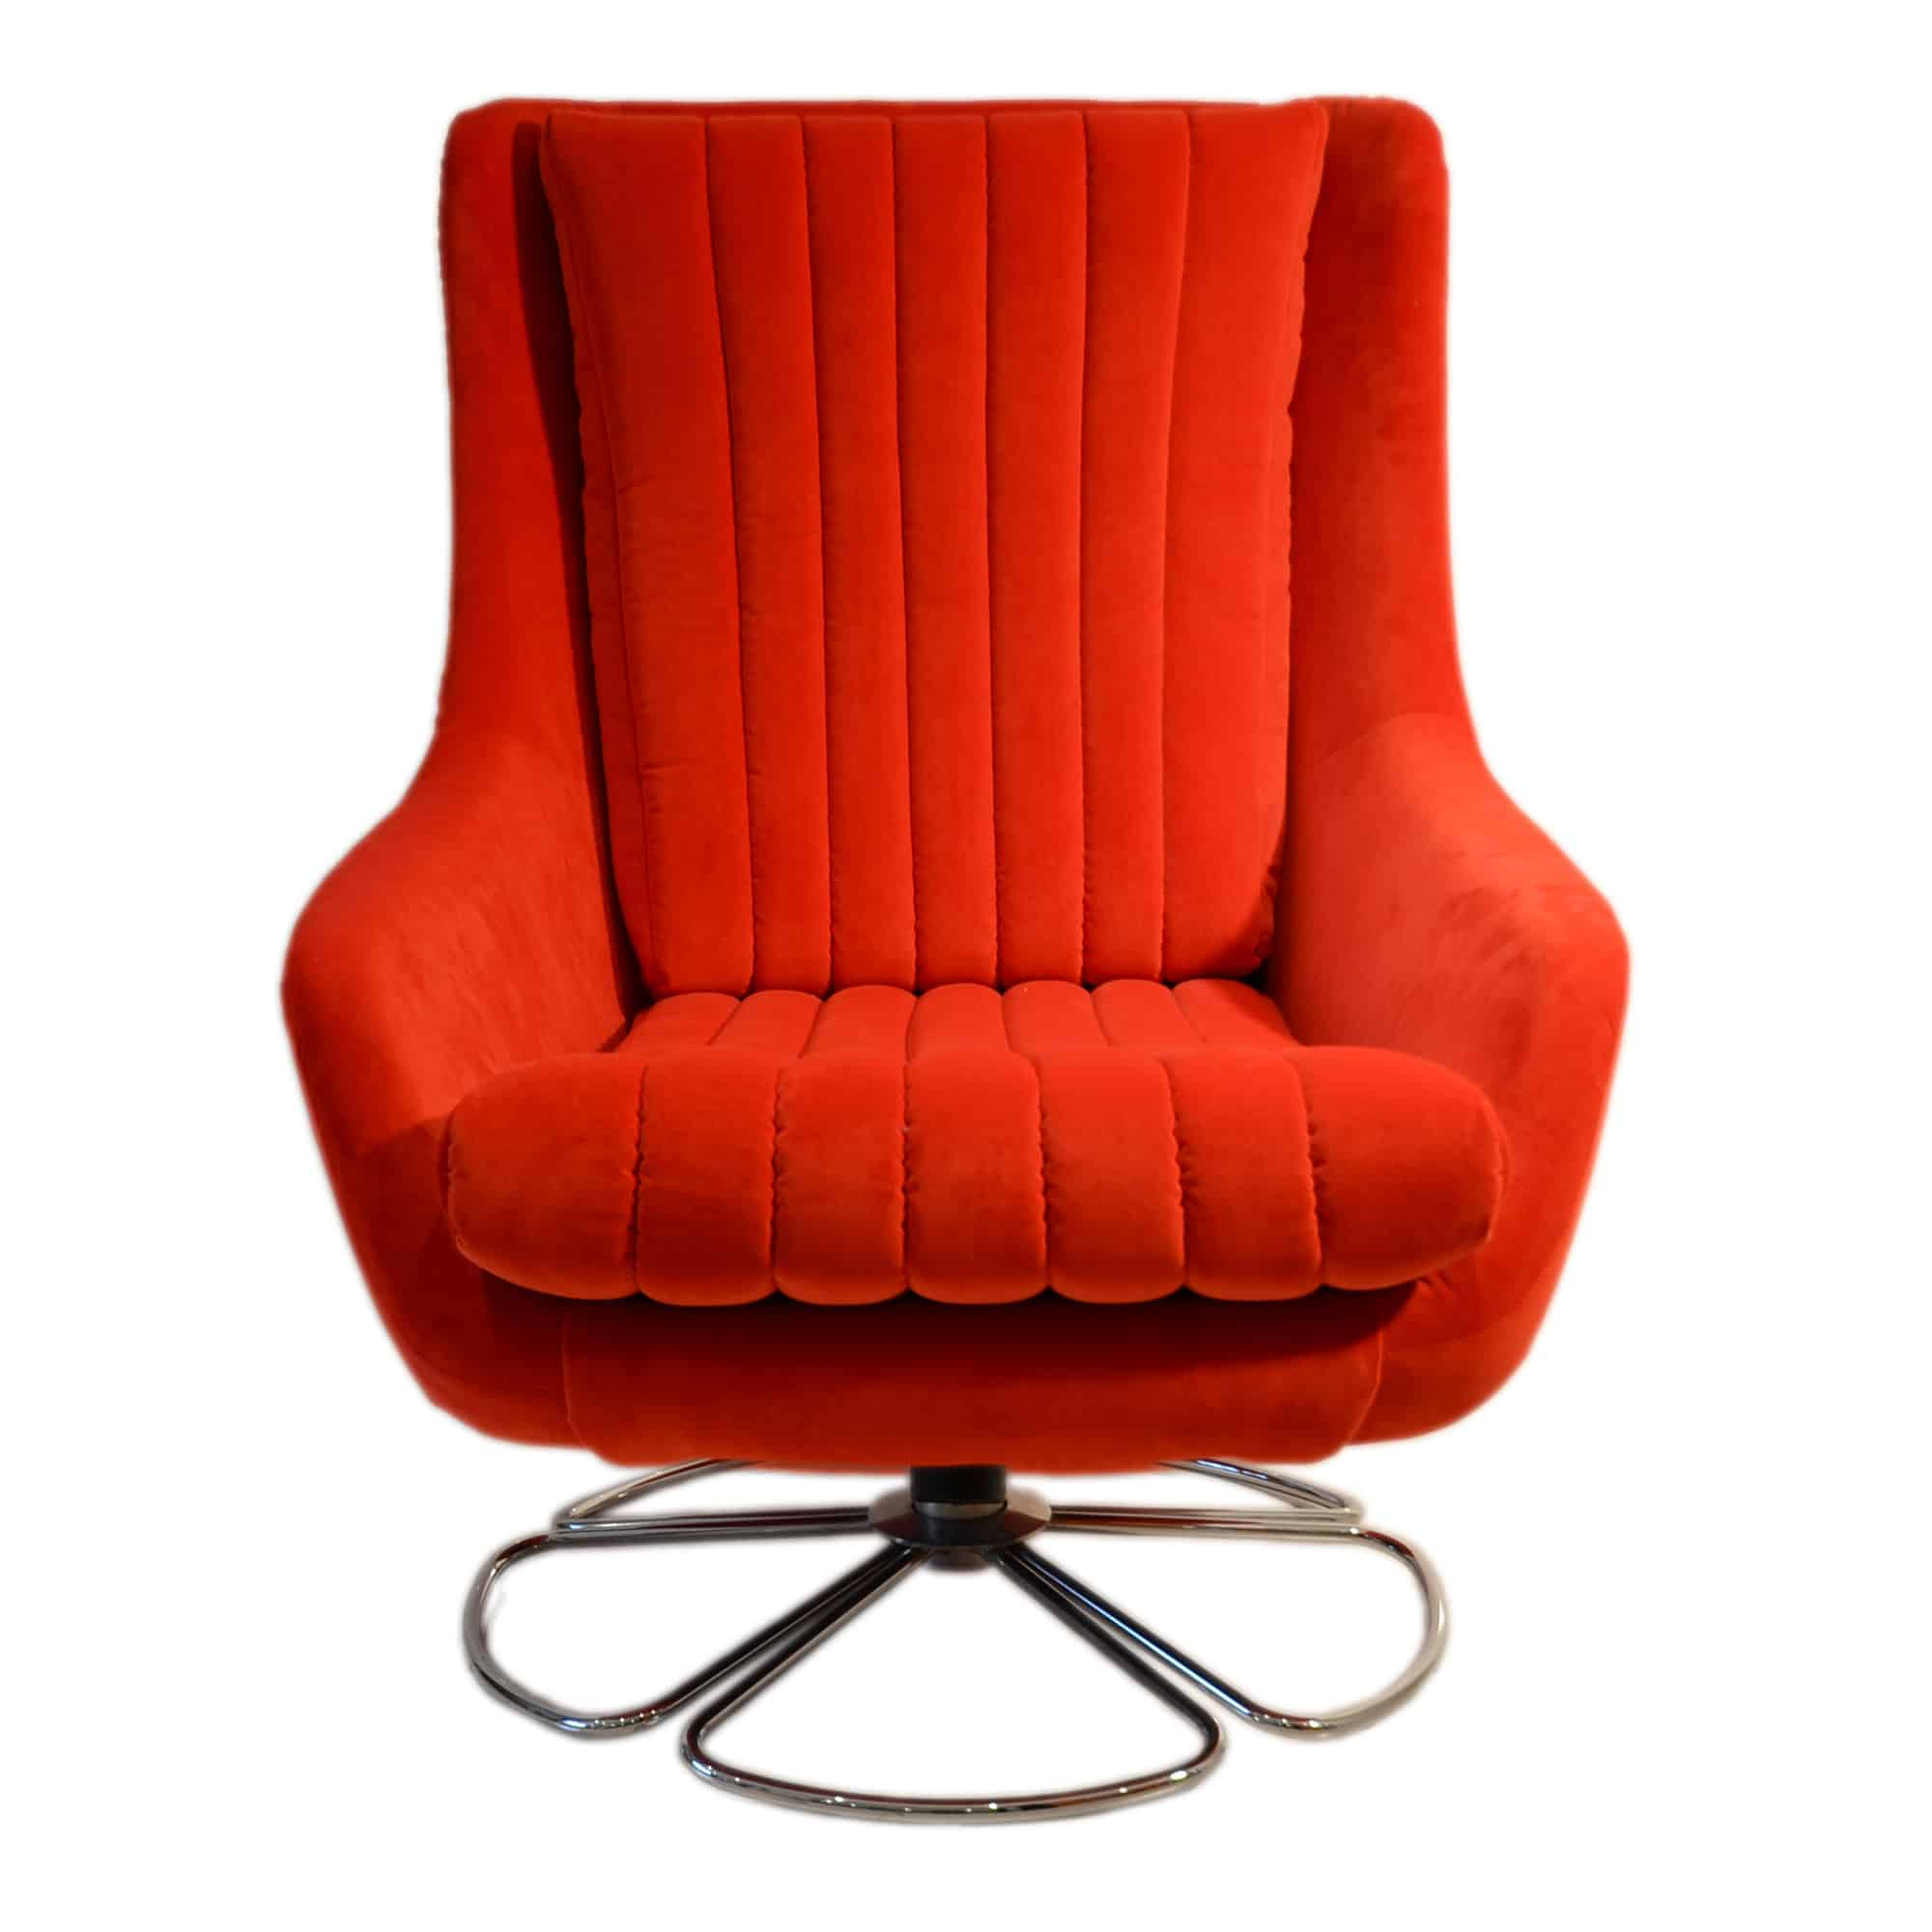 Portobello chair red front view shop alsans